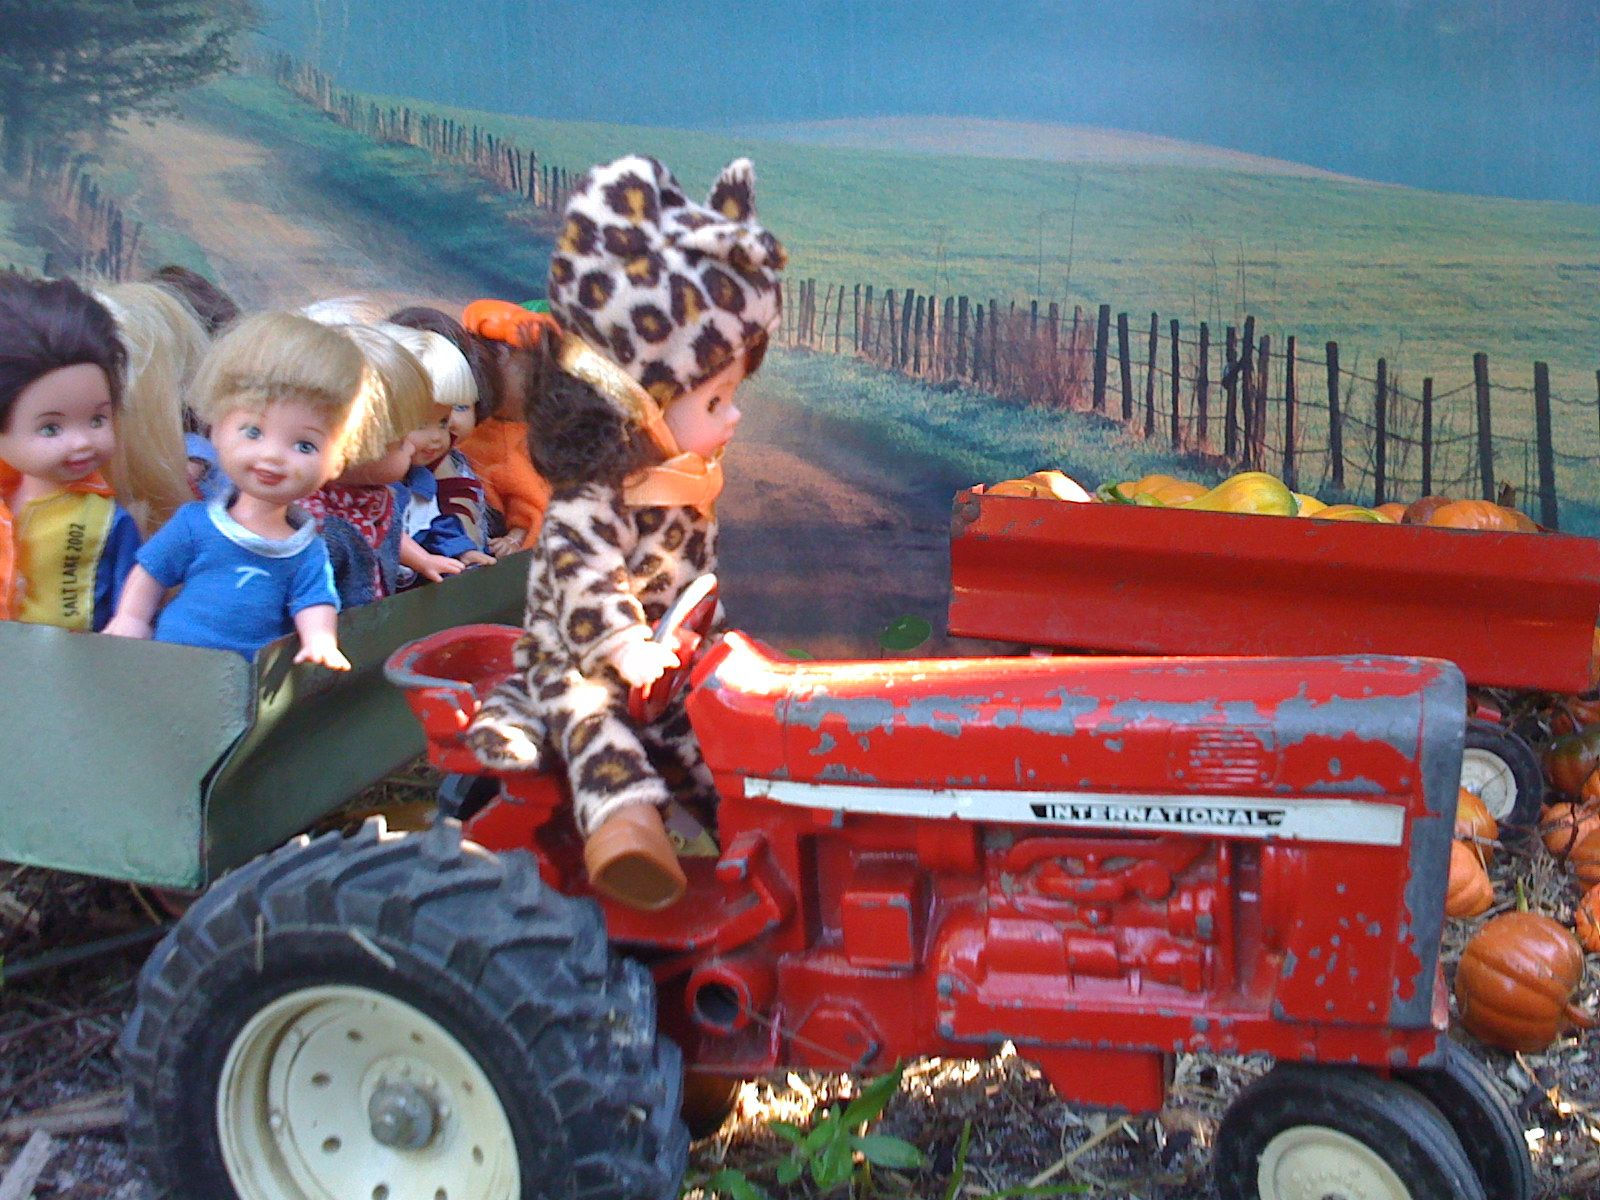 Look who's driving the tractor